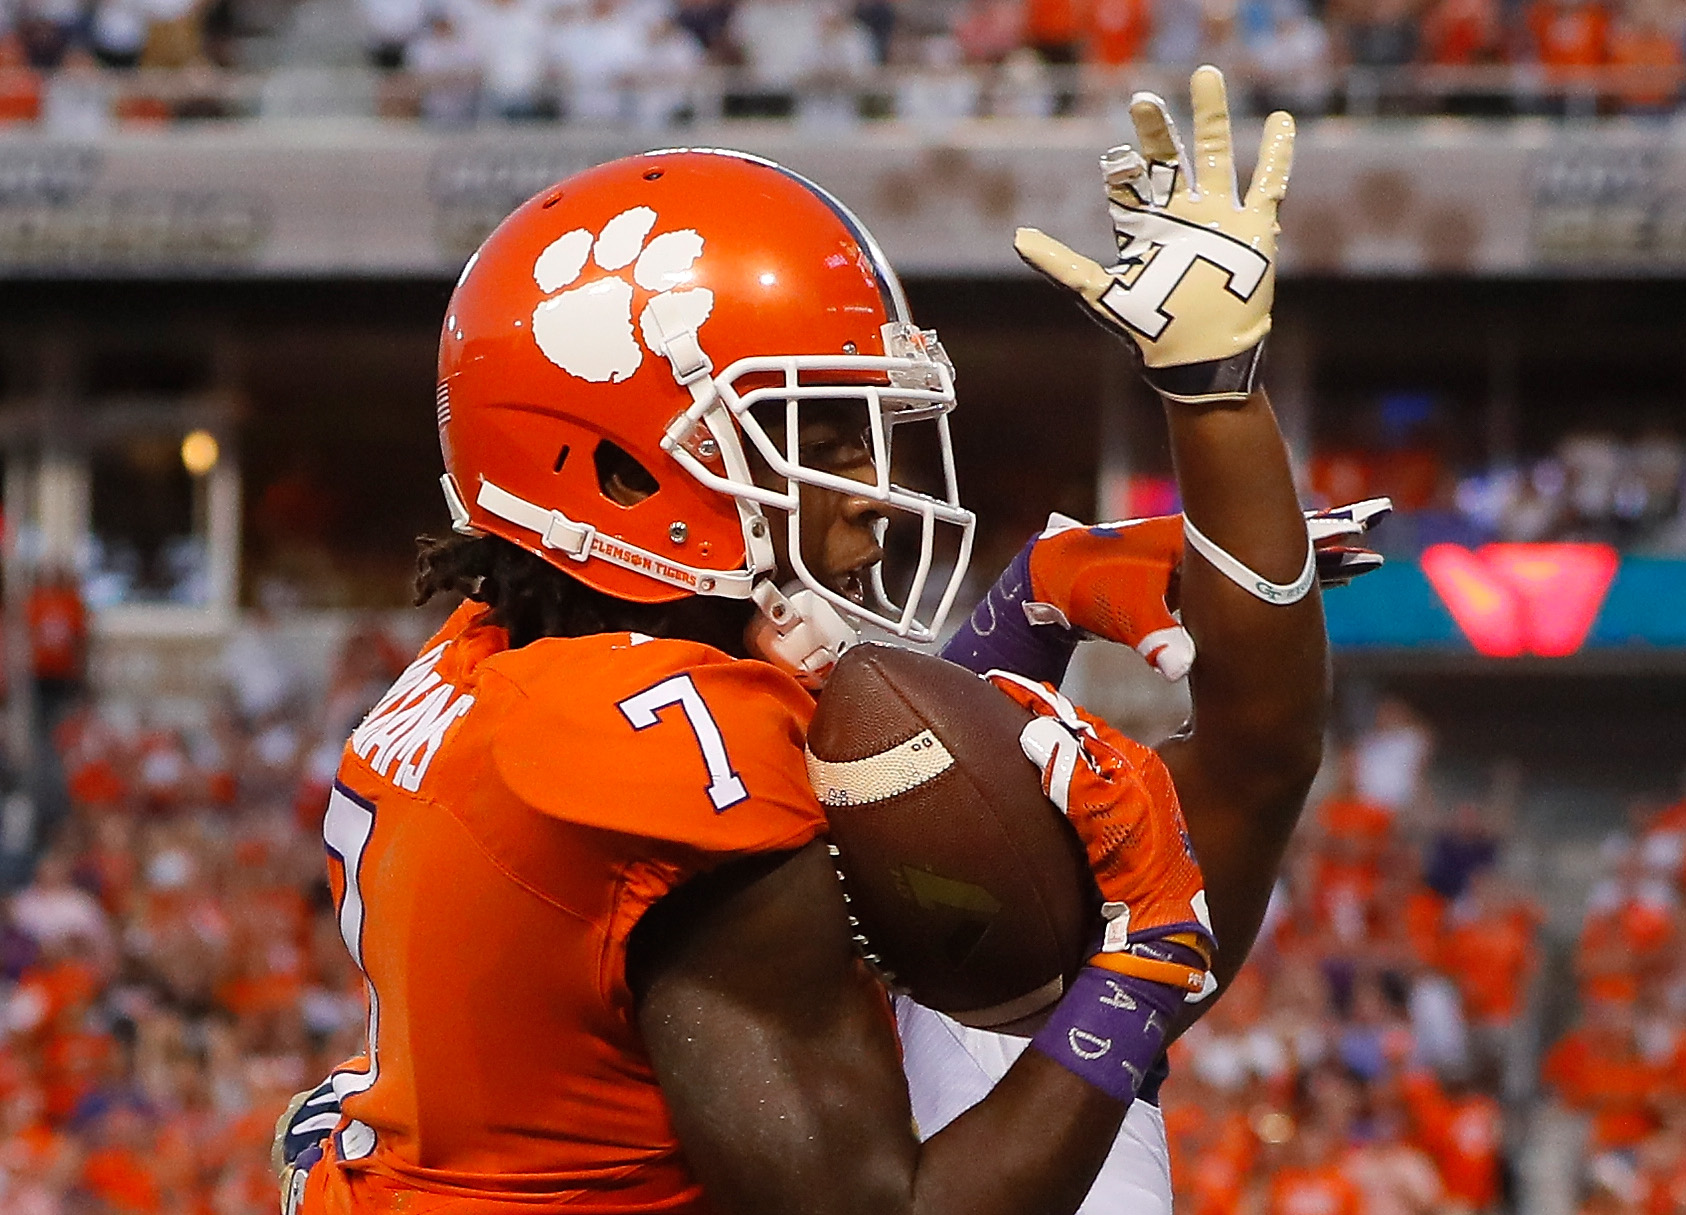 Clemson's Mike Williams overcame a neck injury suffered in 2015 to become one of the best receivers in college football last year. (Getty Images)